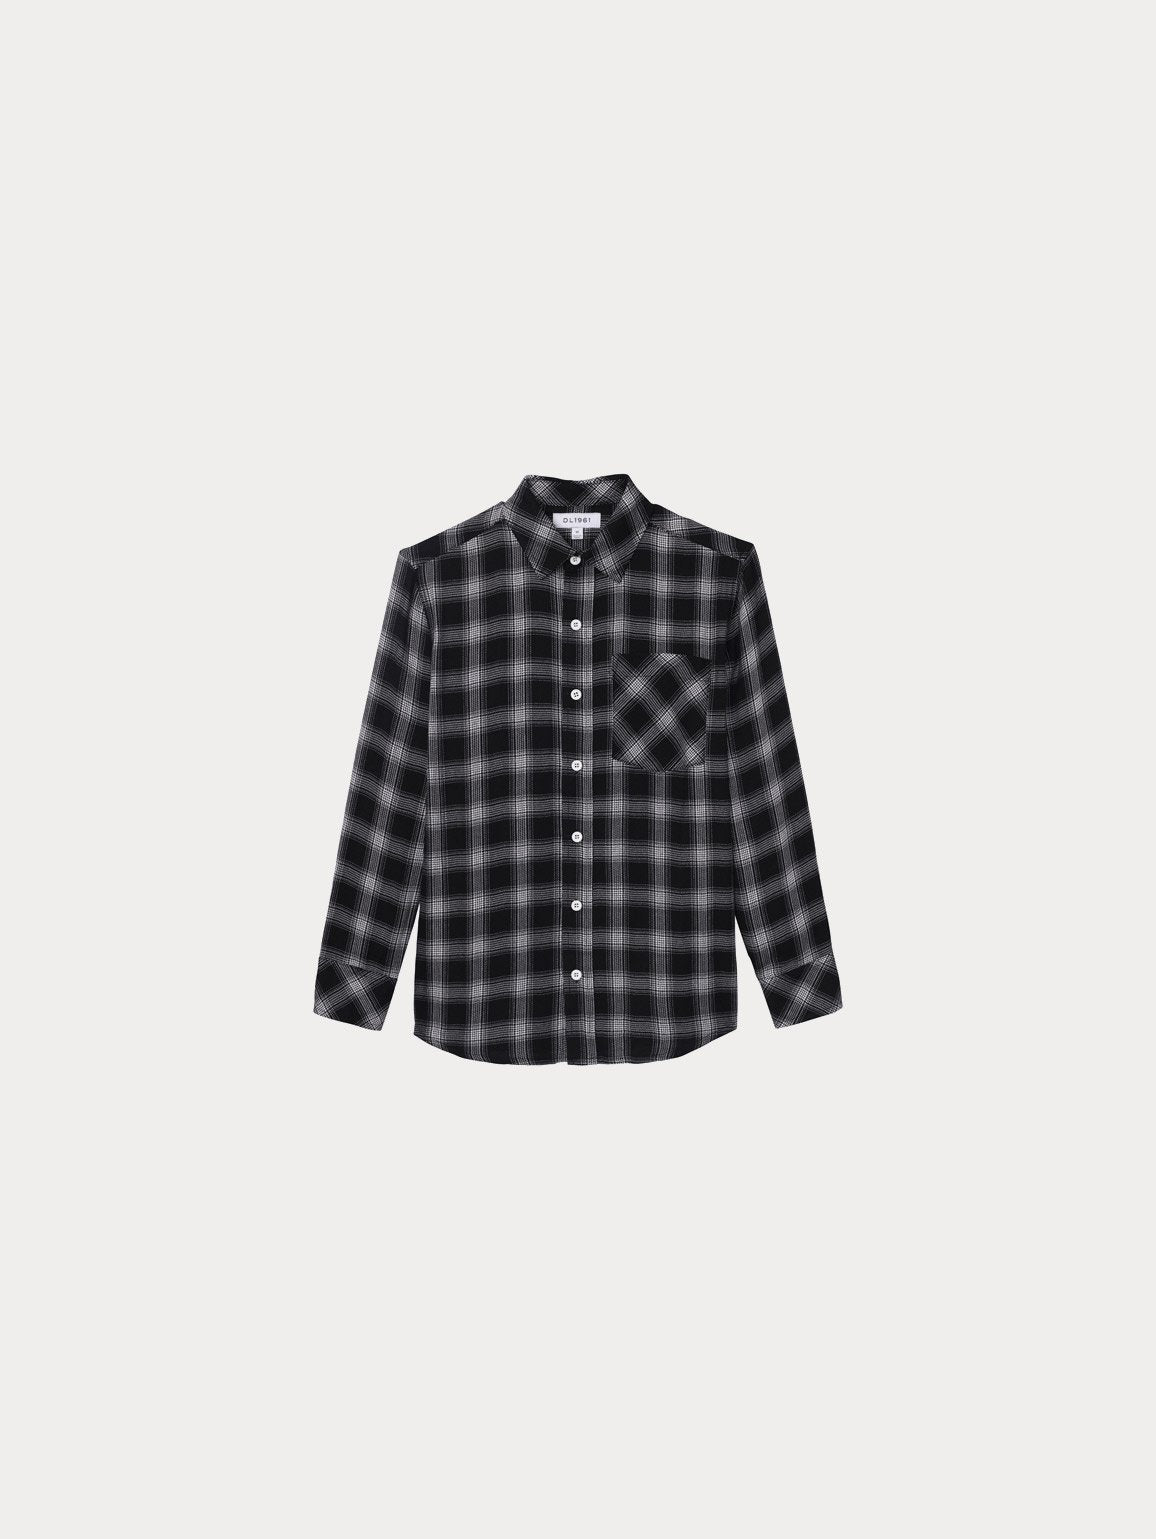 Ash Toddler Unisex Shirt | Black Plaid